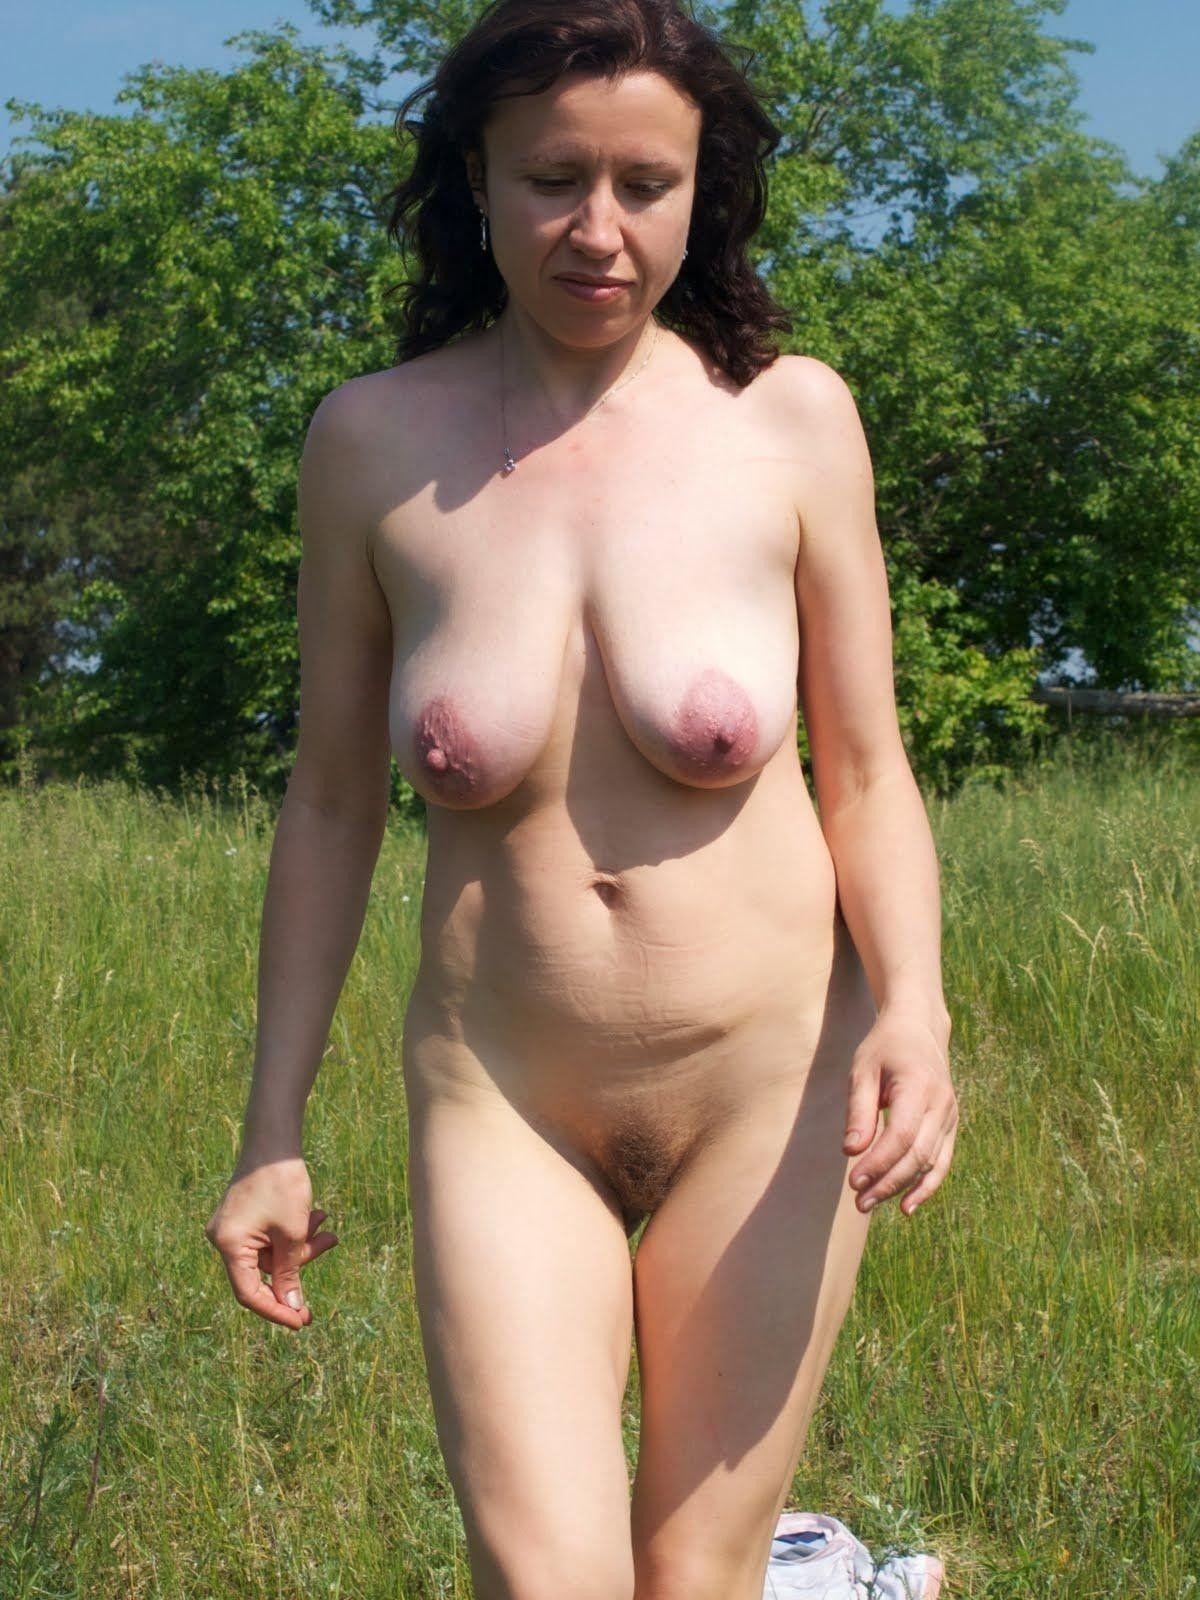 Camel toe pussy outdoor rubbing